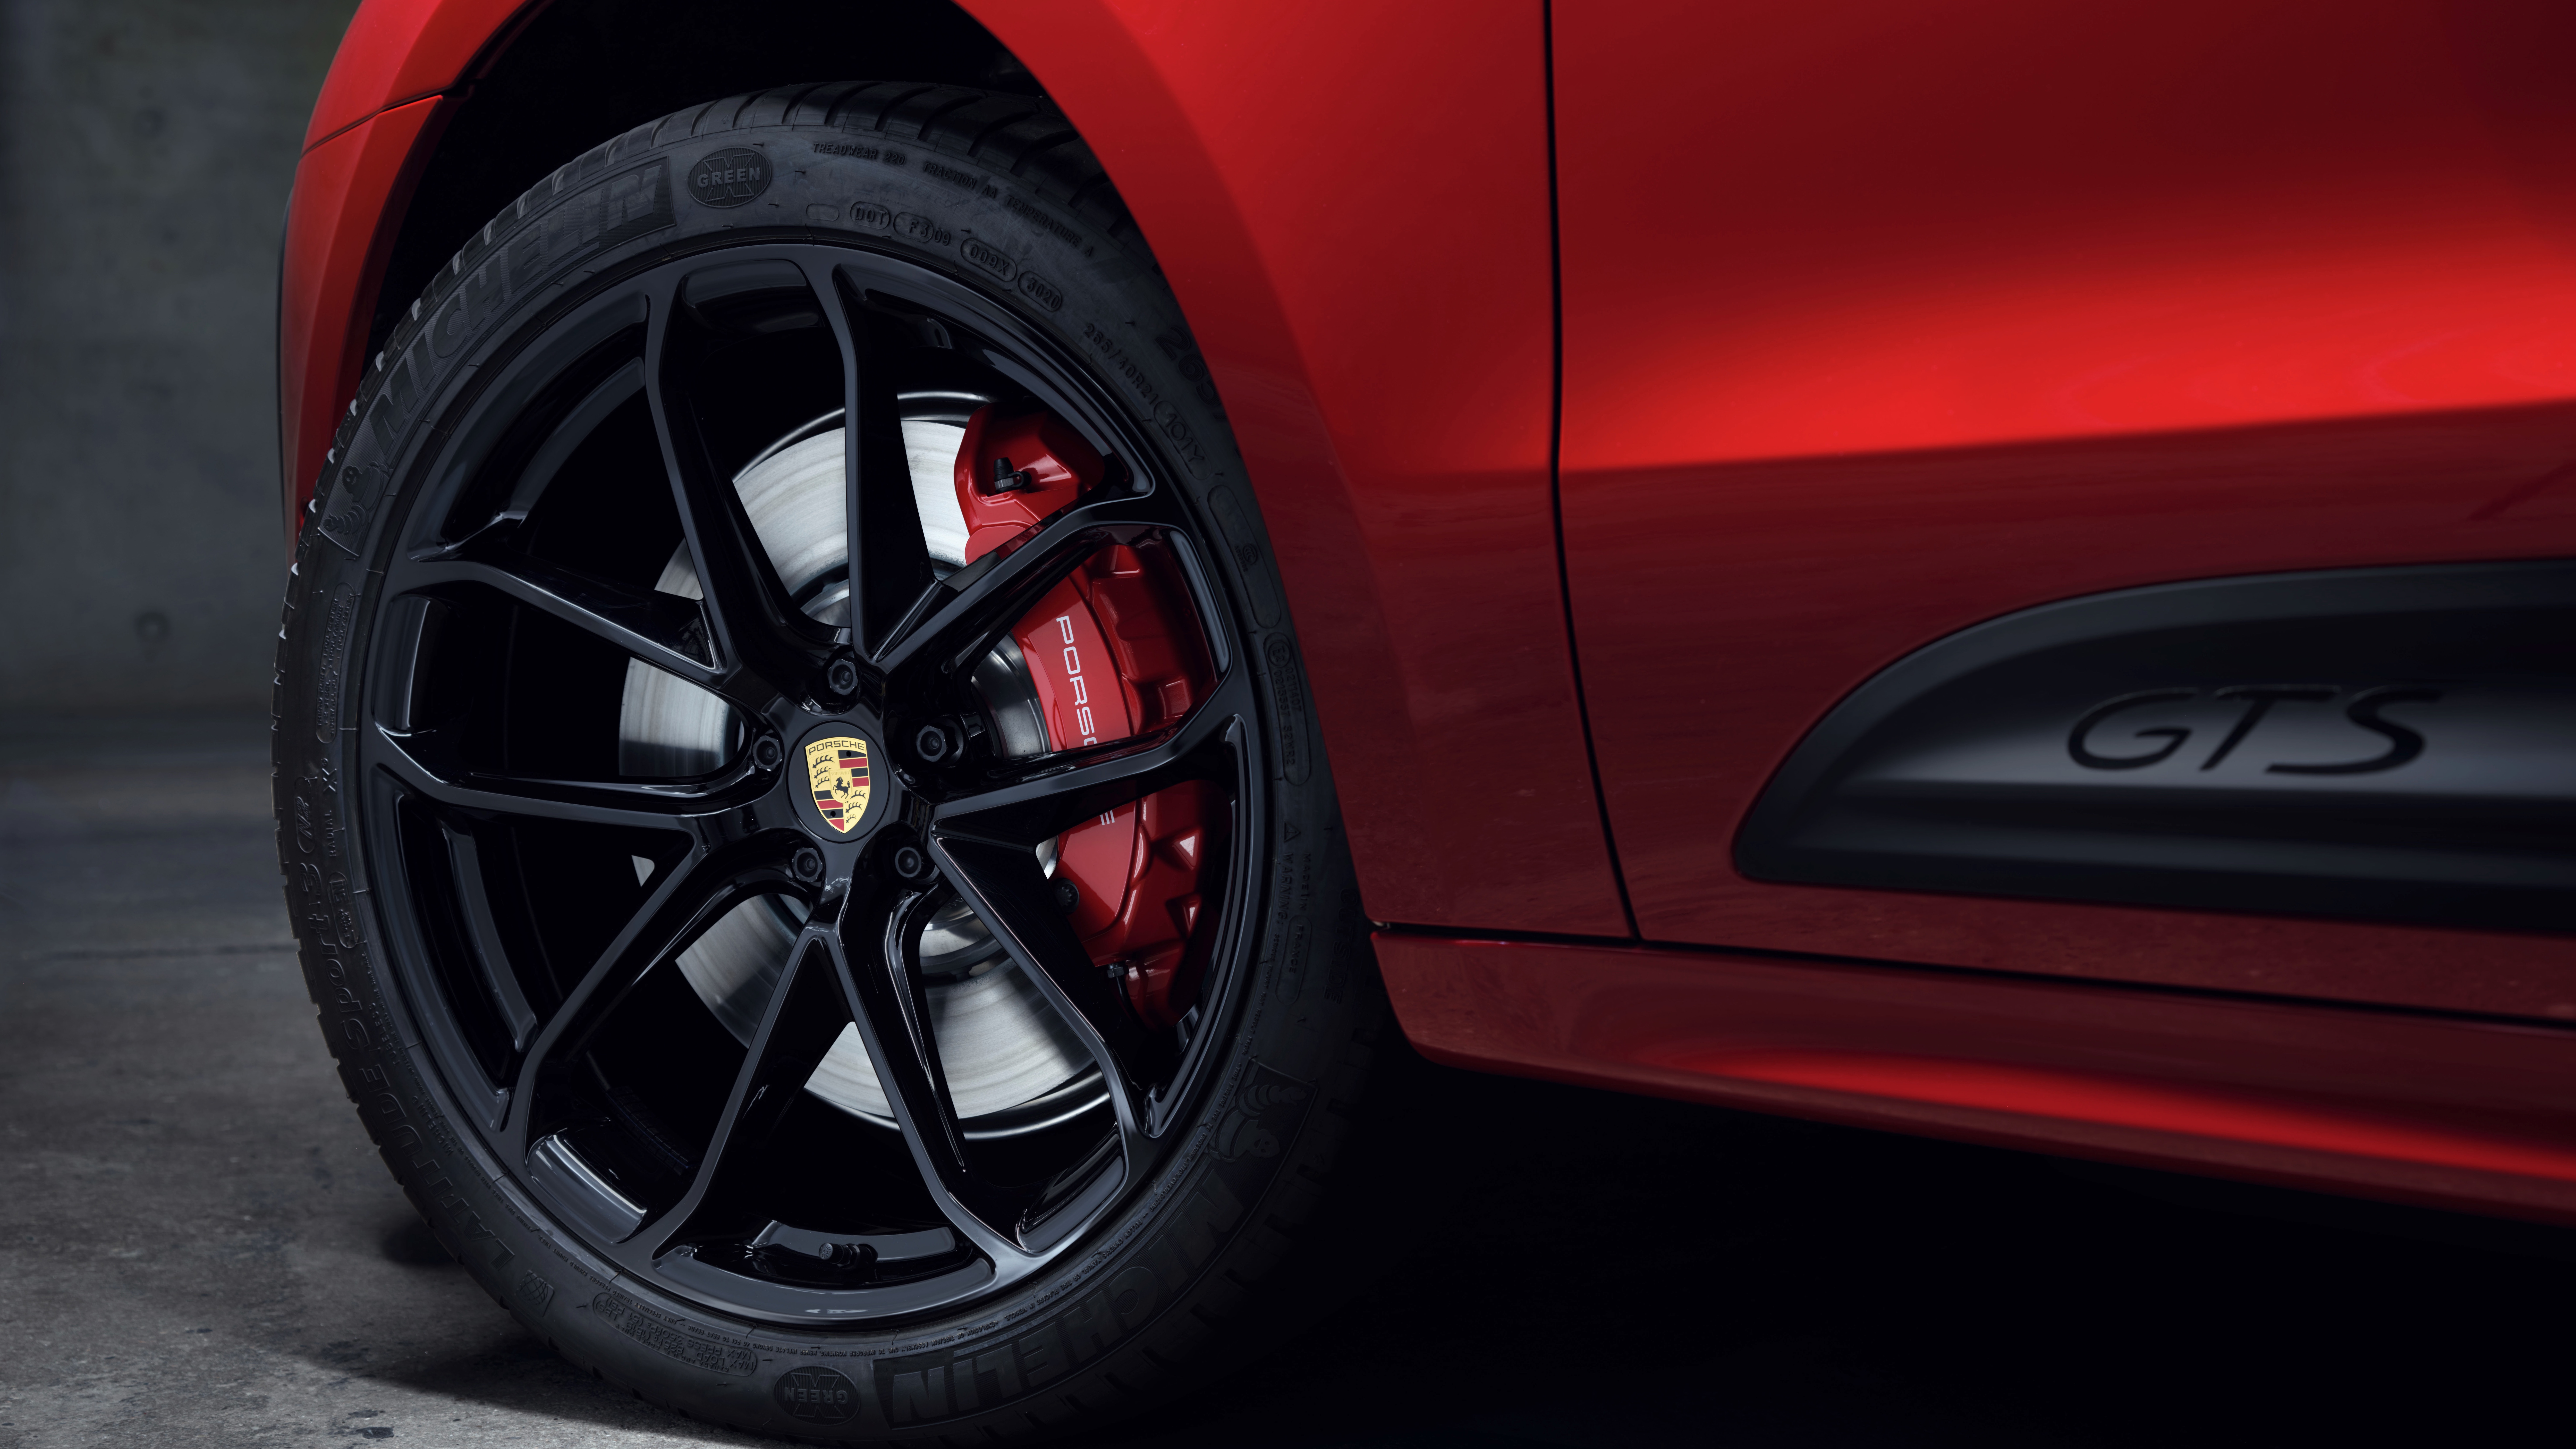 2022 Porsche Macan facelift – revised petrol SUV revealed with more power, minor aesthetic tweaks Image #1321231